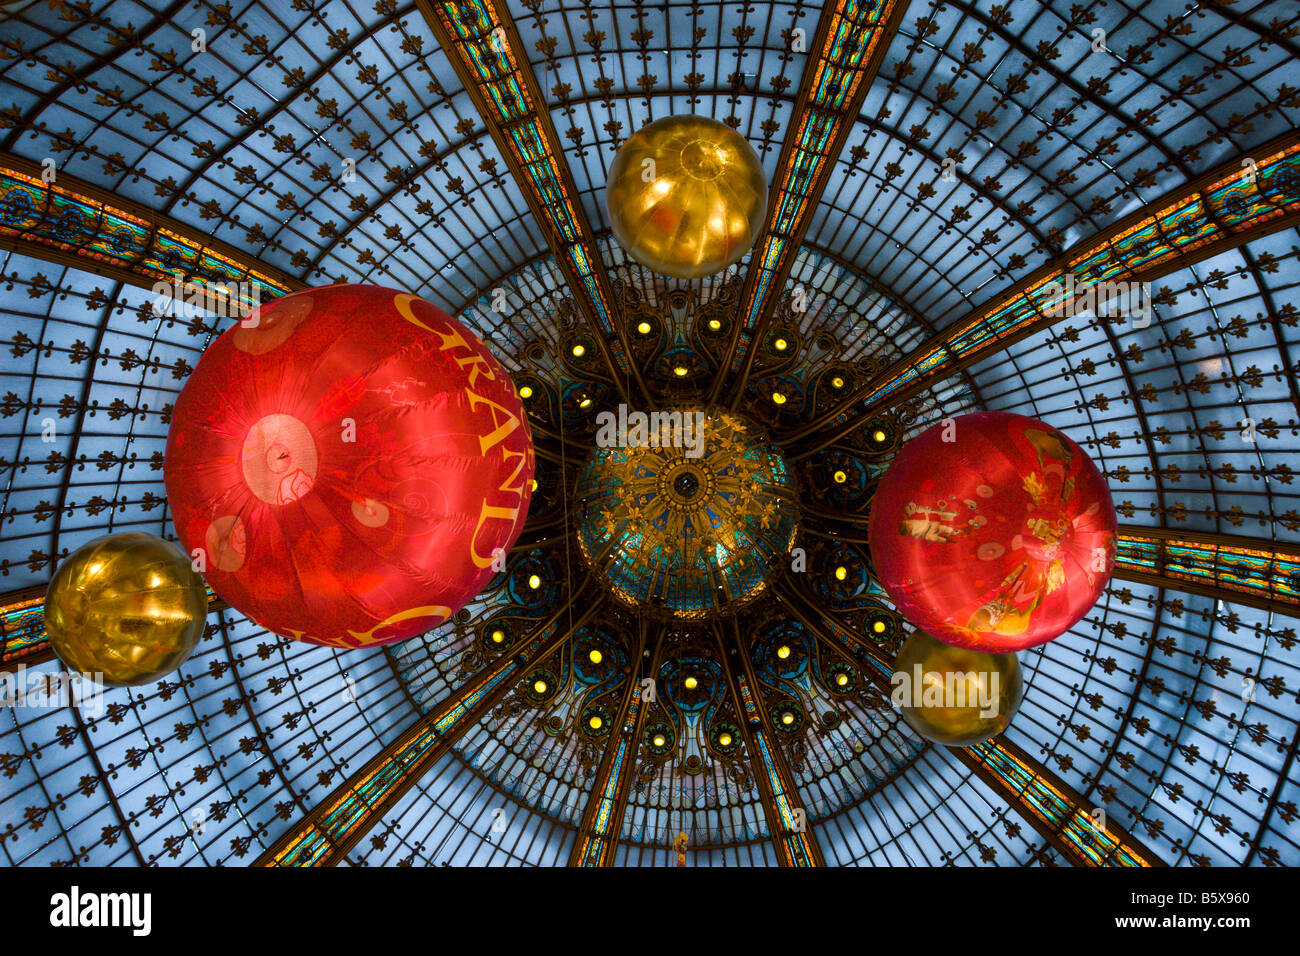 Department store Galeries Lafayette Paris France glass dome roof and Christmas decorations 2008 - Stock Image